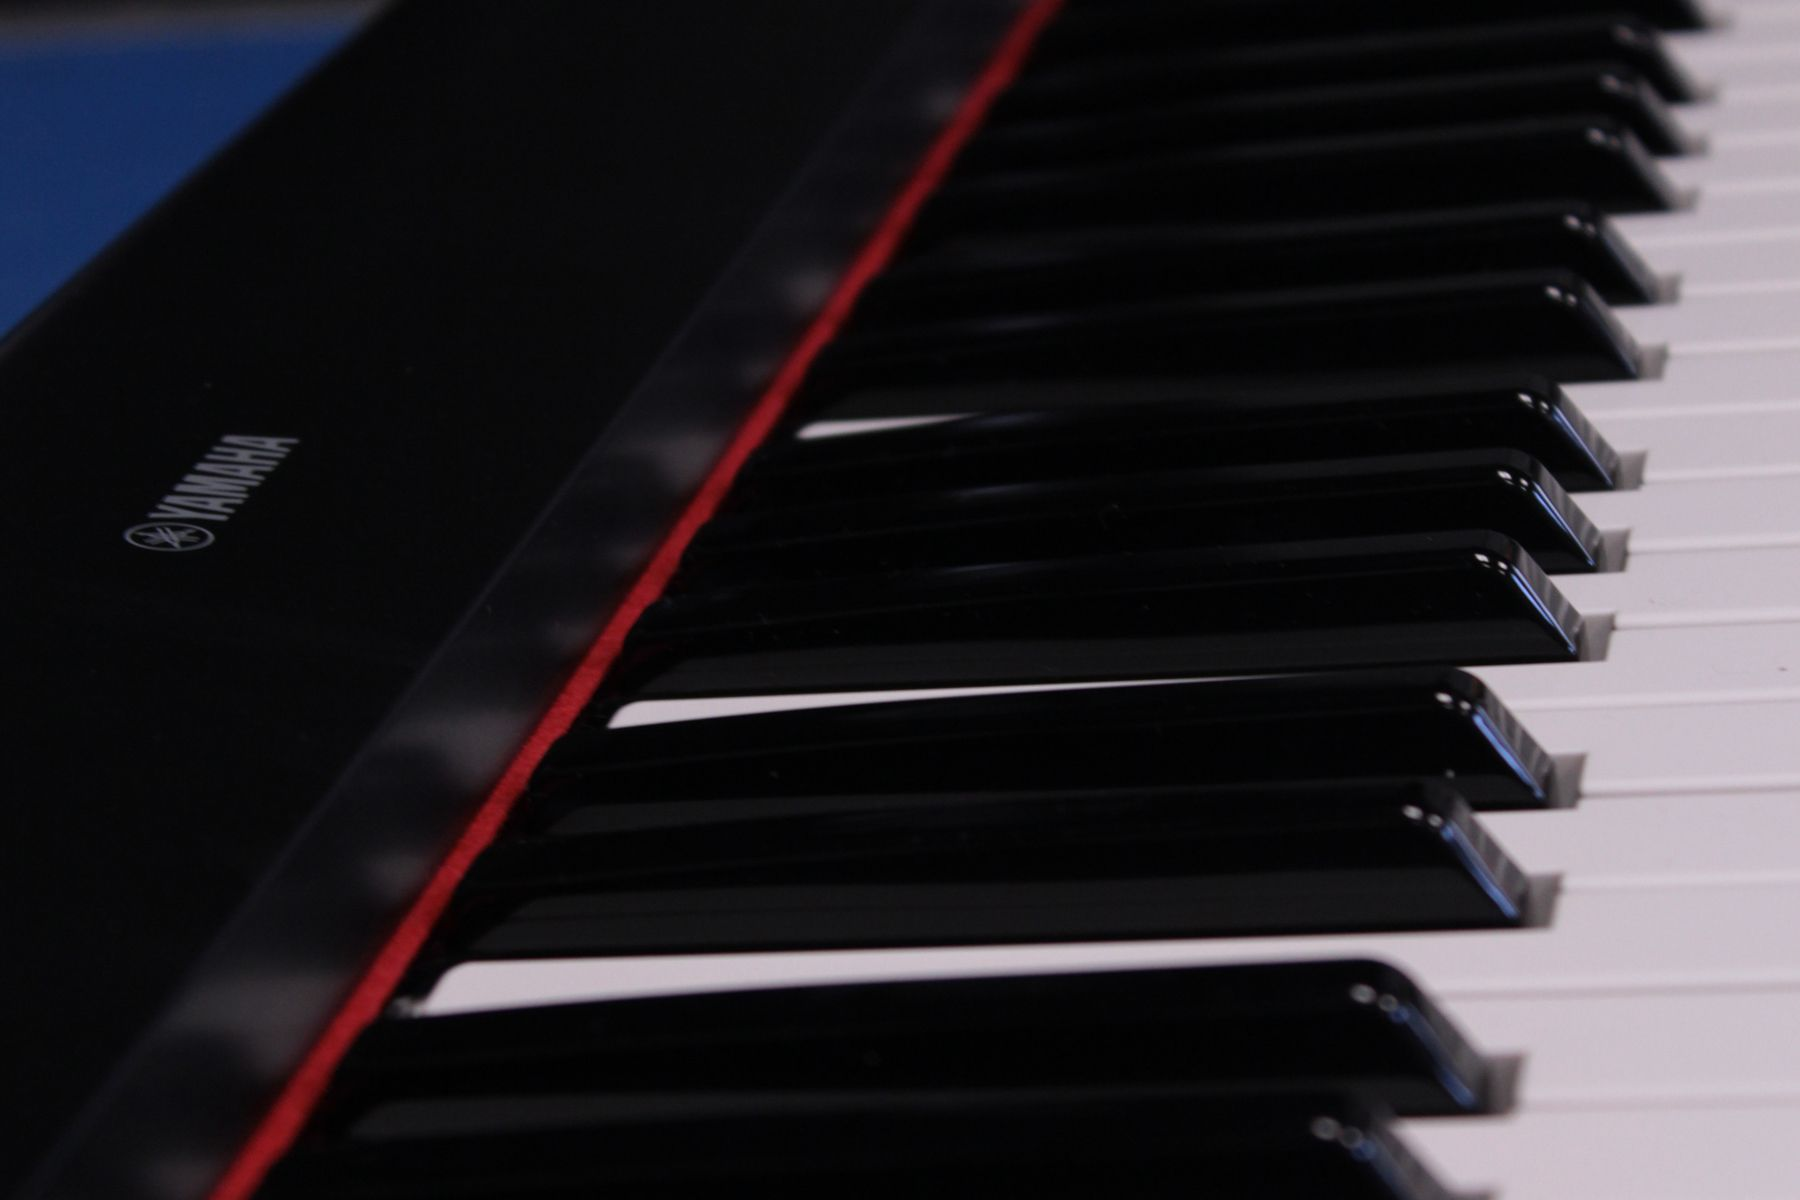 Yamaha Keyboard Closeup